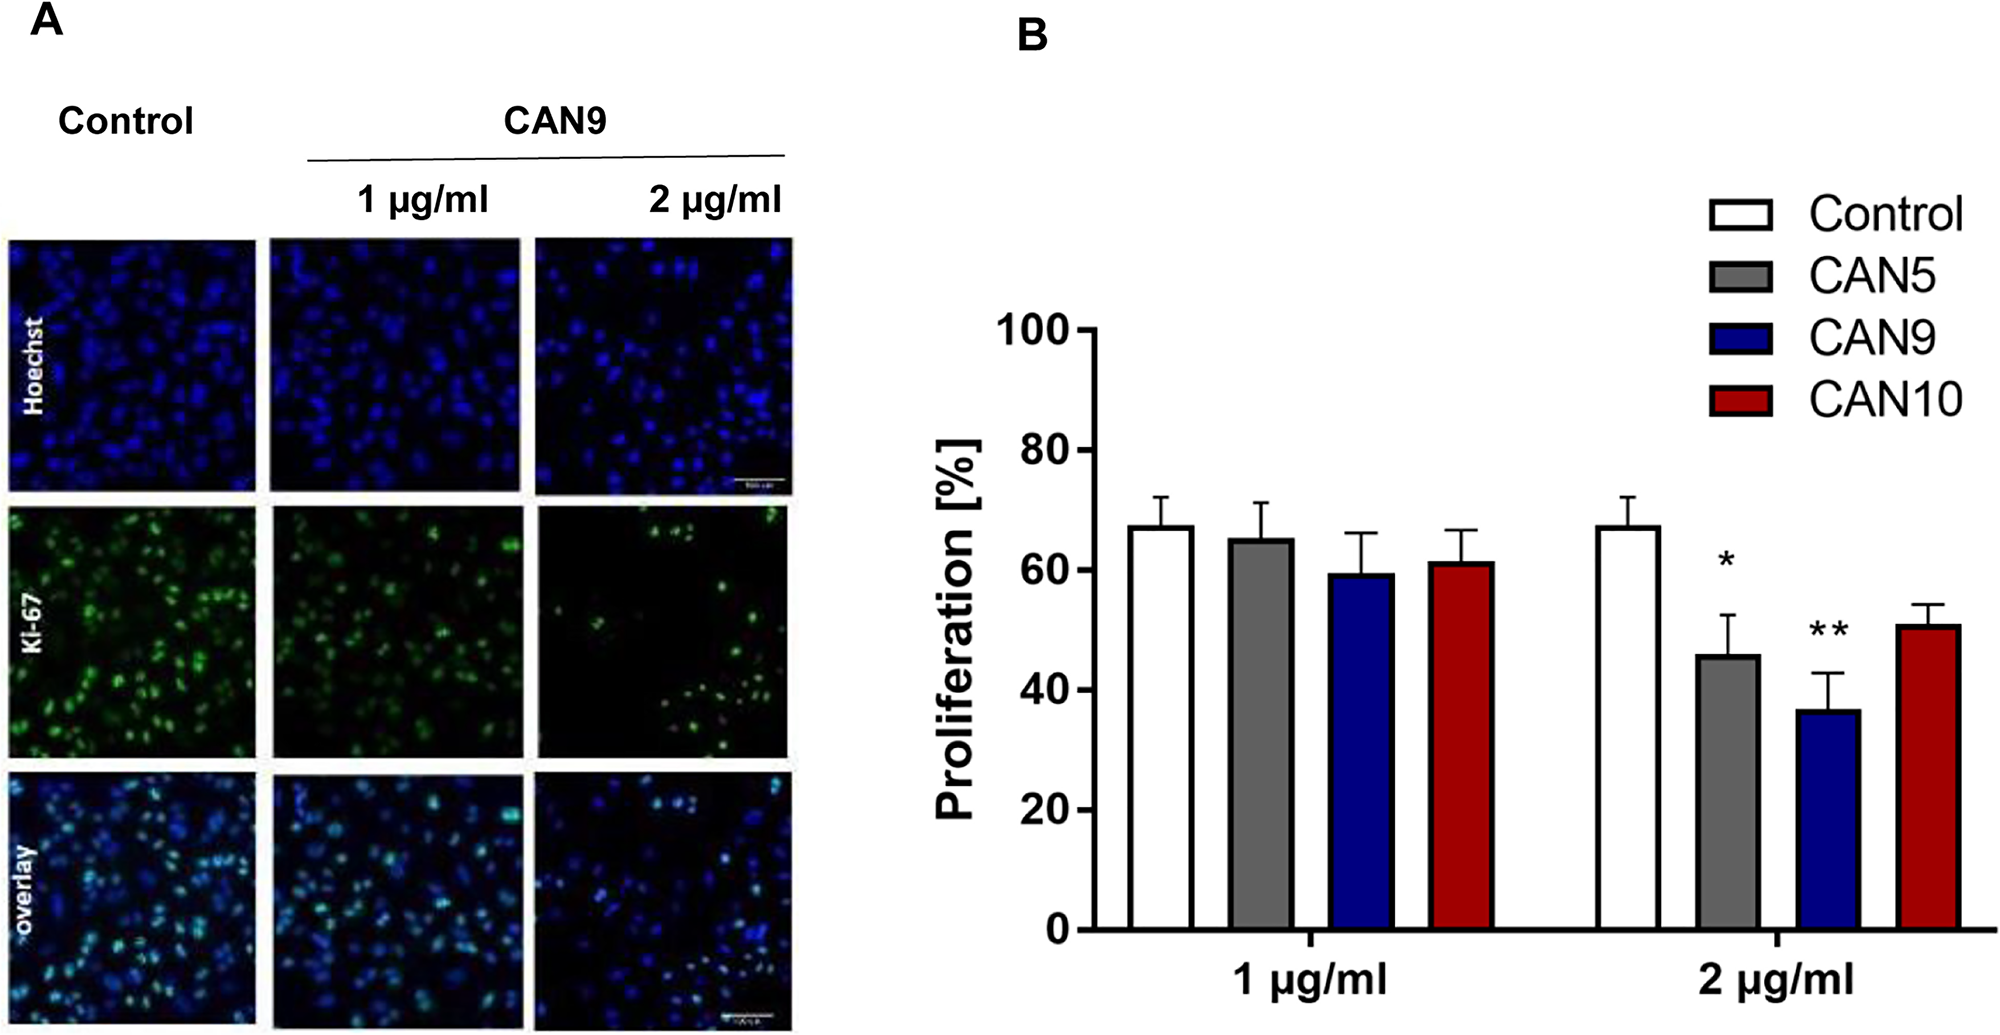 Anti-proliferative effect of Cannabis extracts on cancer cells.